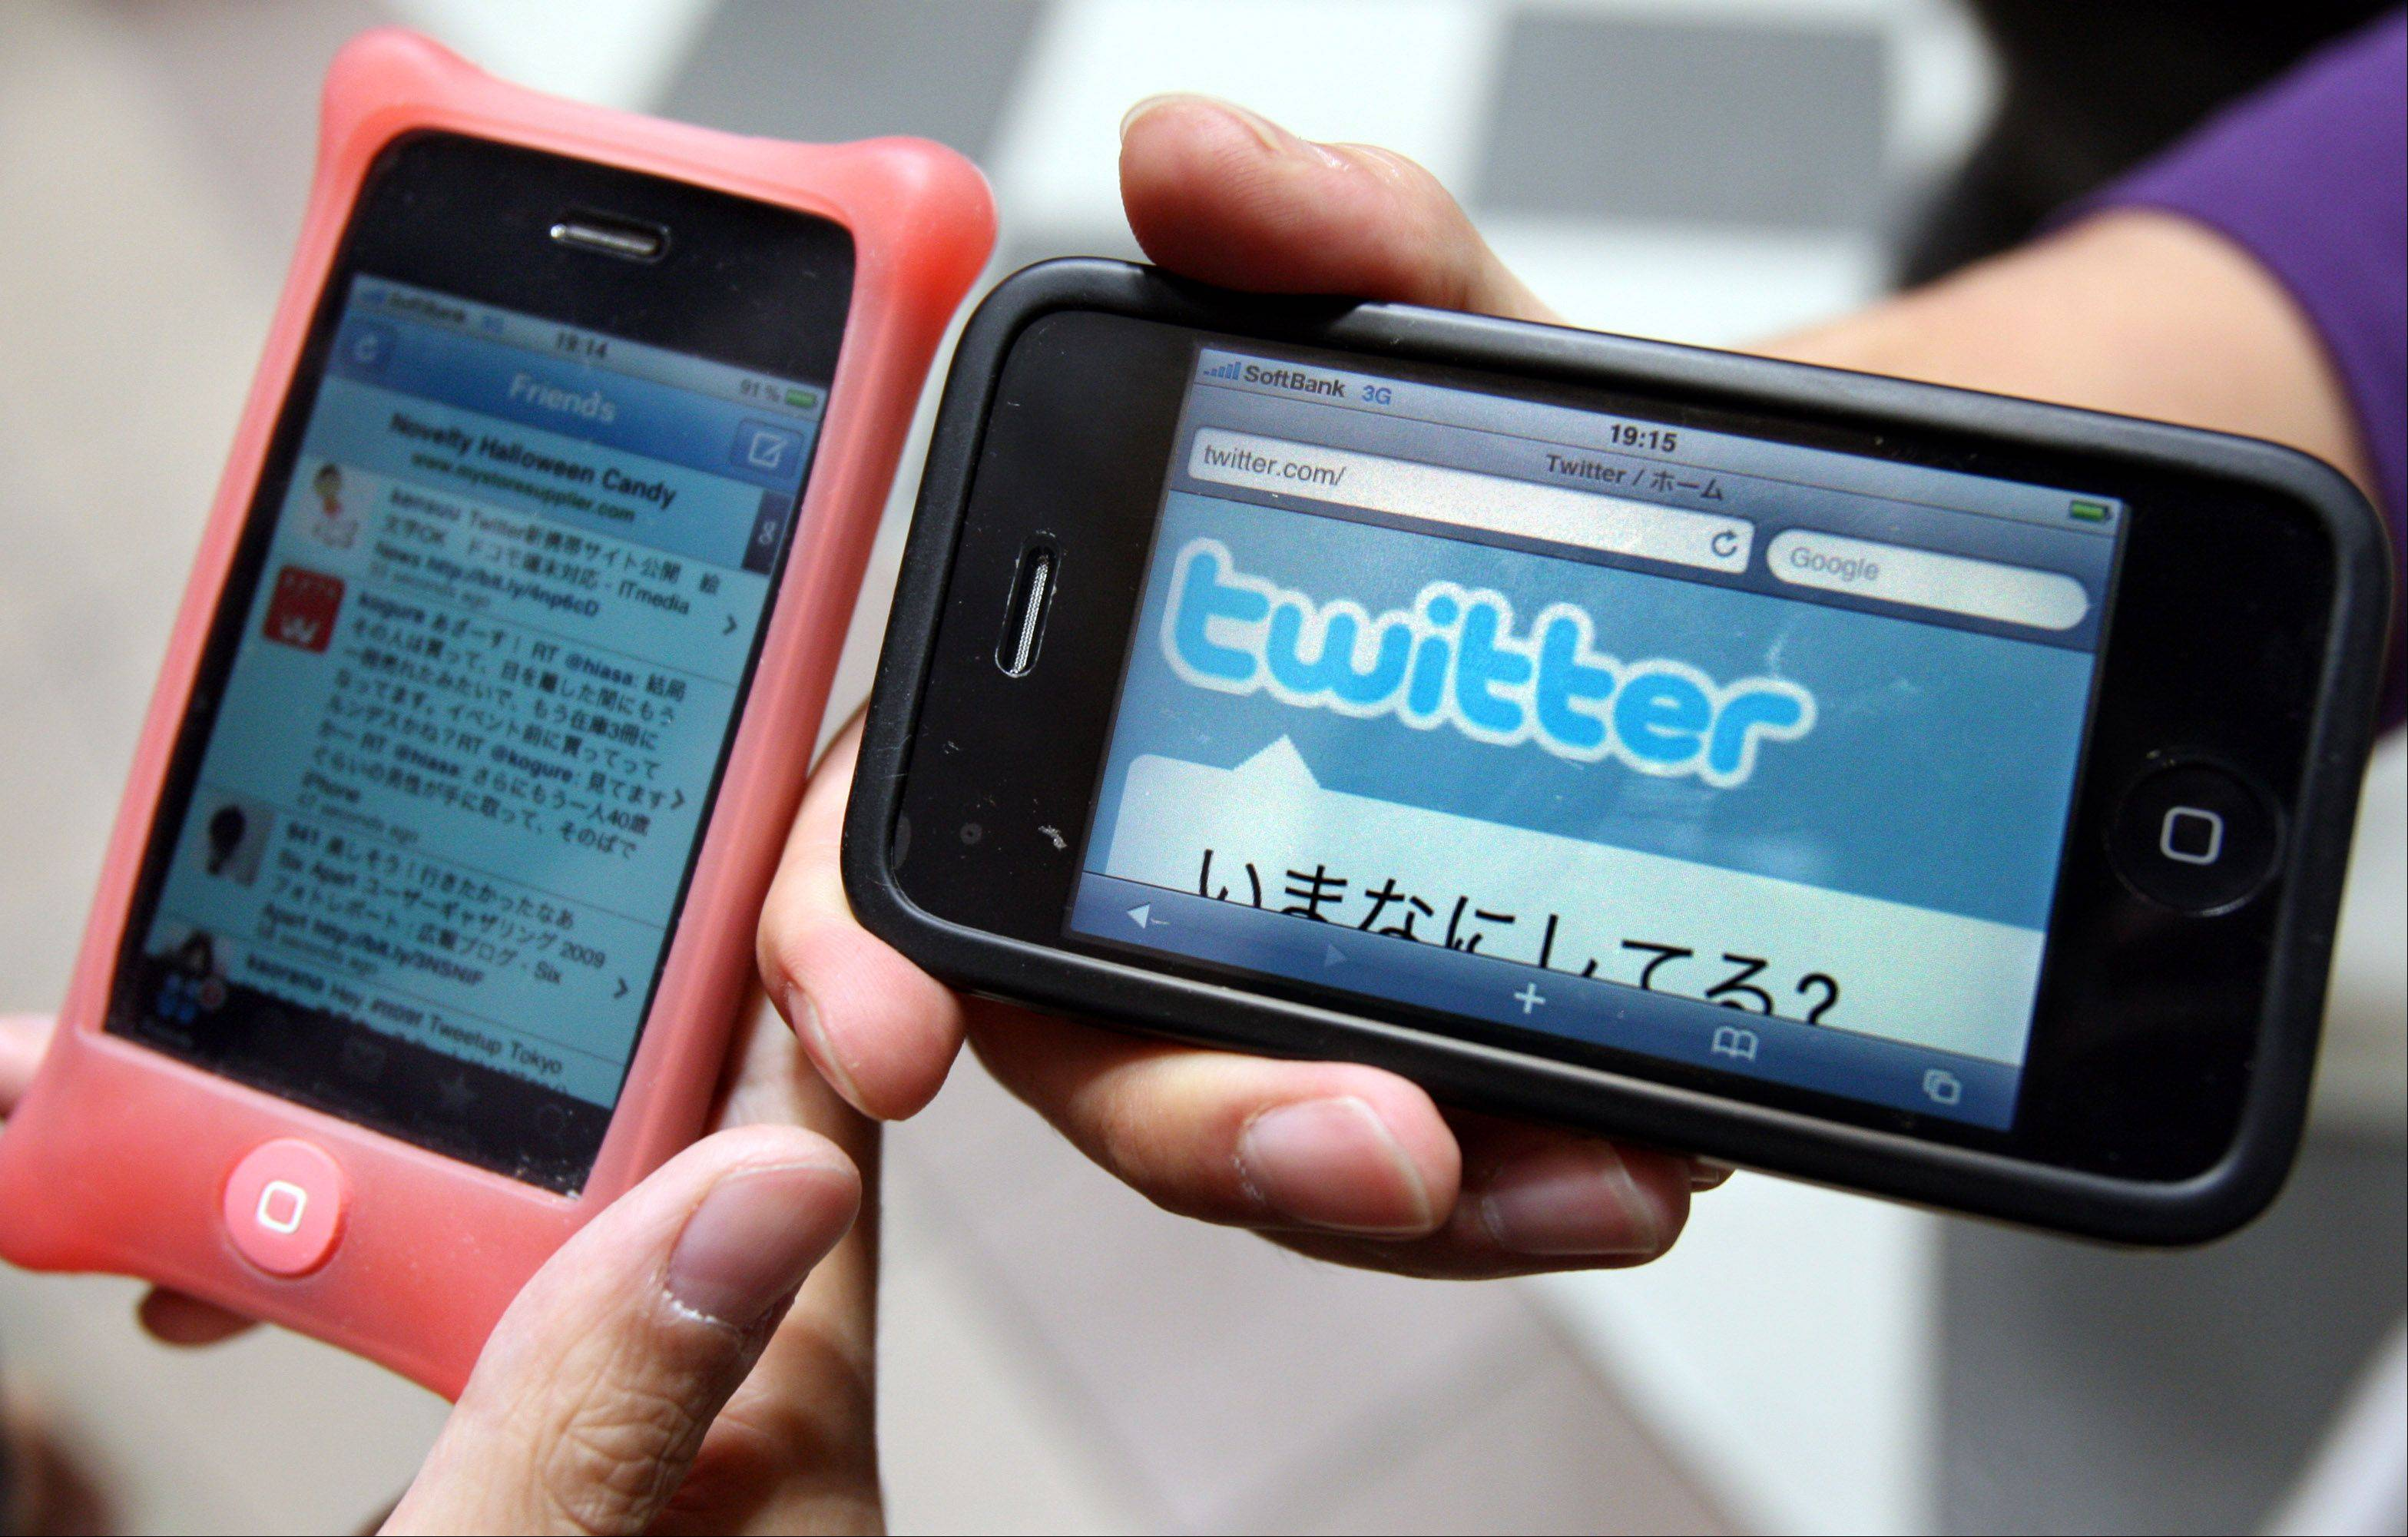 ASSOCIATED PRESSTwitter mistakenly reset the passwords of many of its users, it admitted Thursday.